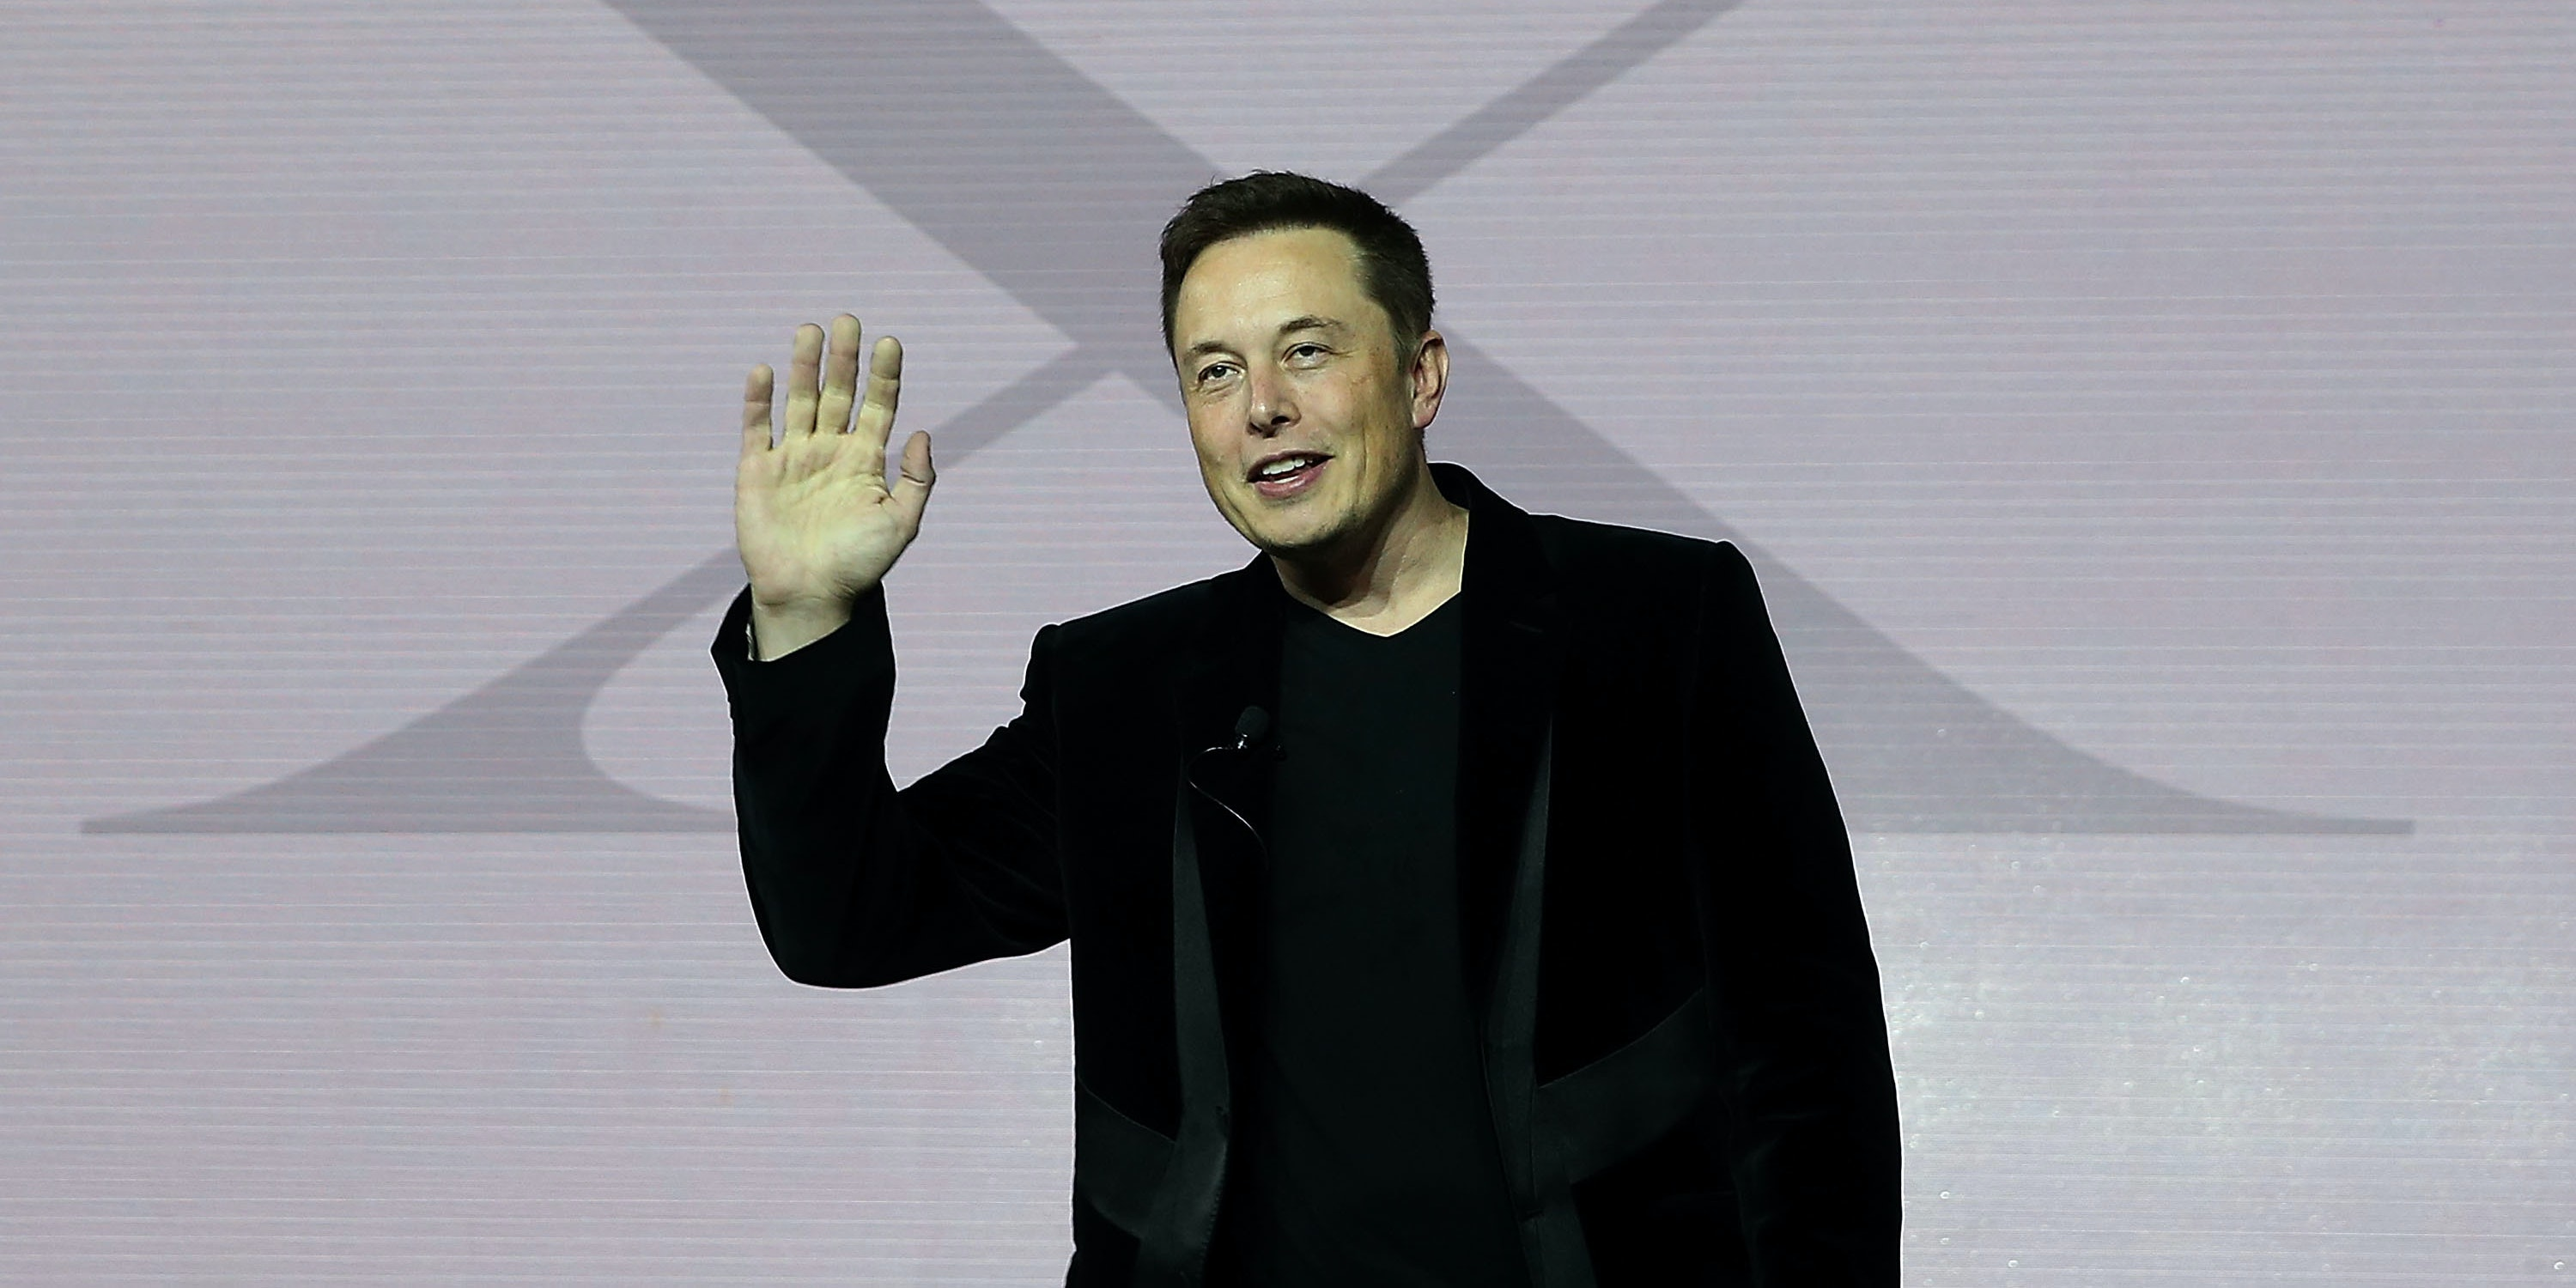 Elon Musk's best quotes of 2016